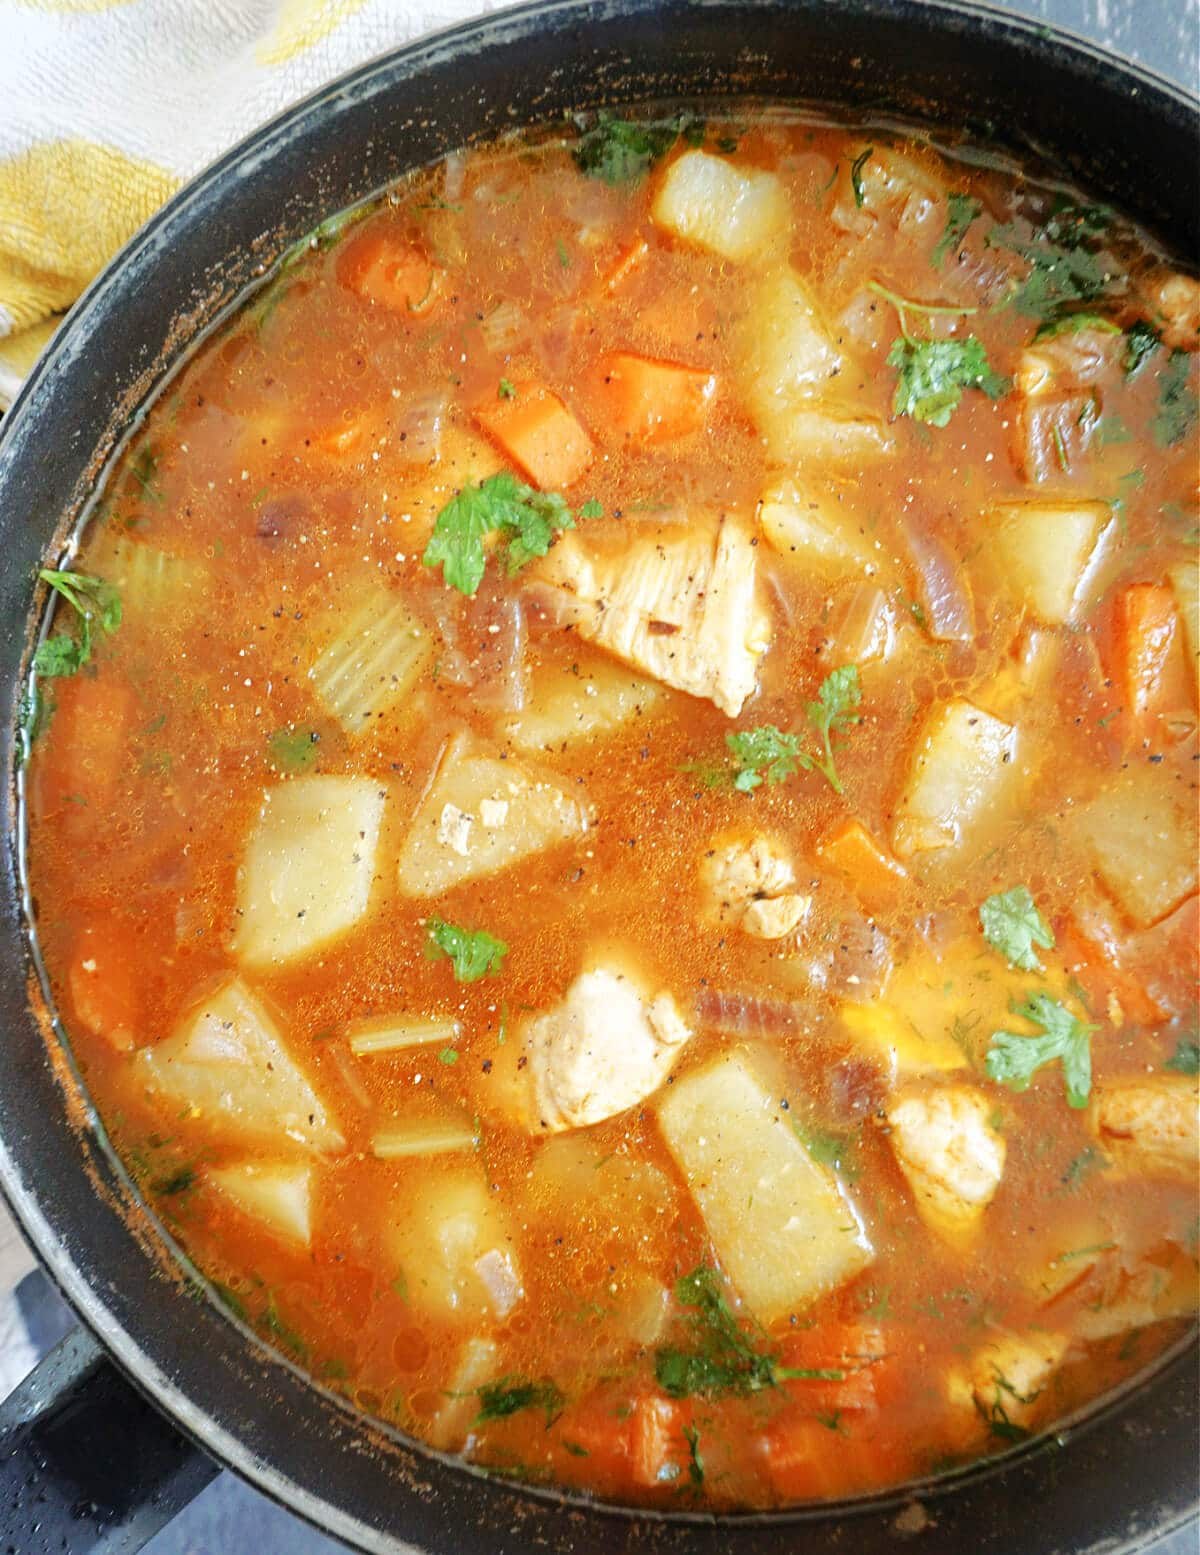 Close-up shot of a pan with chicken and vegetable stew